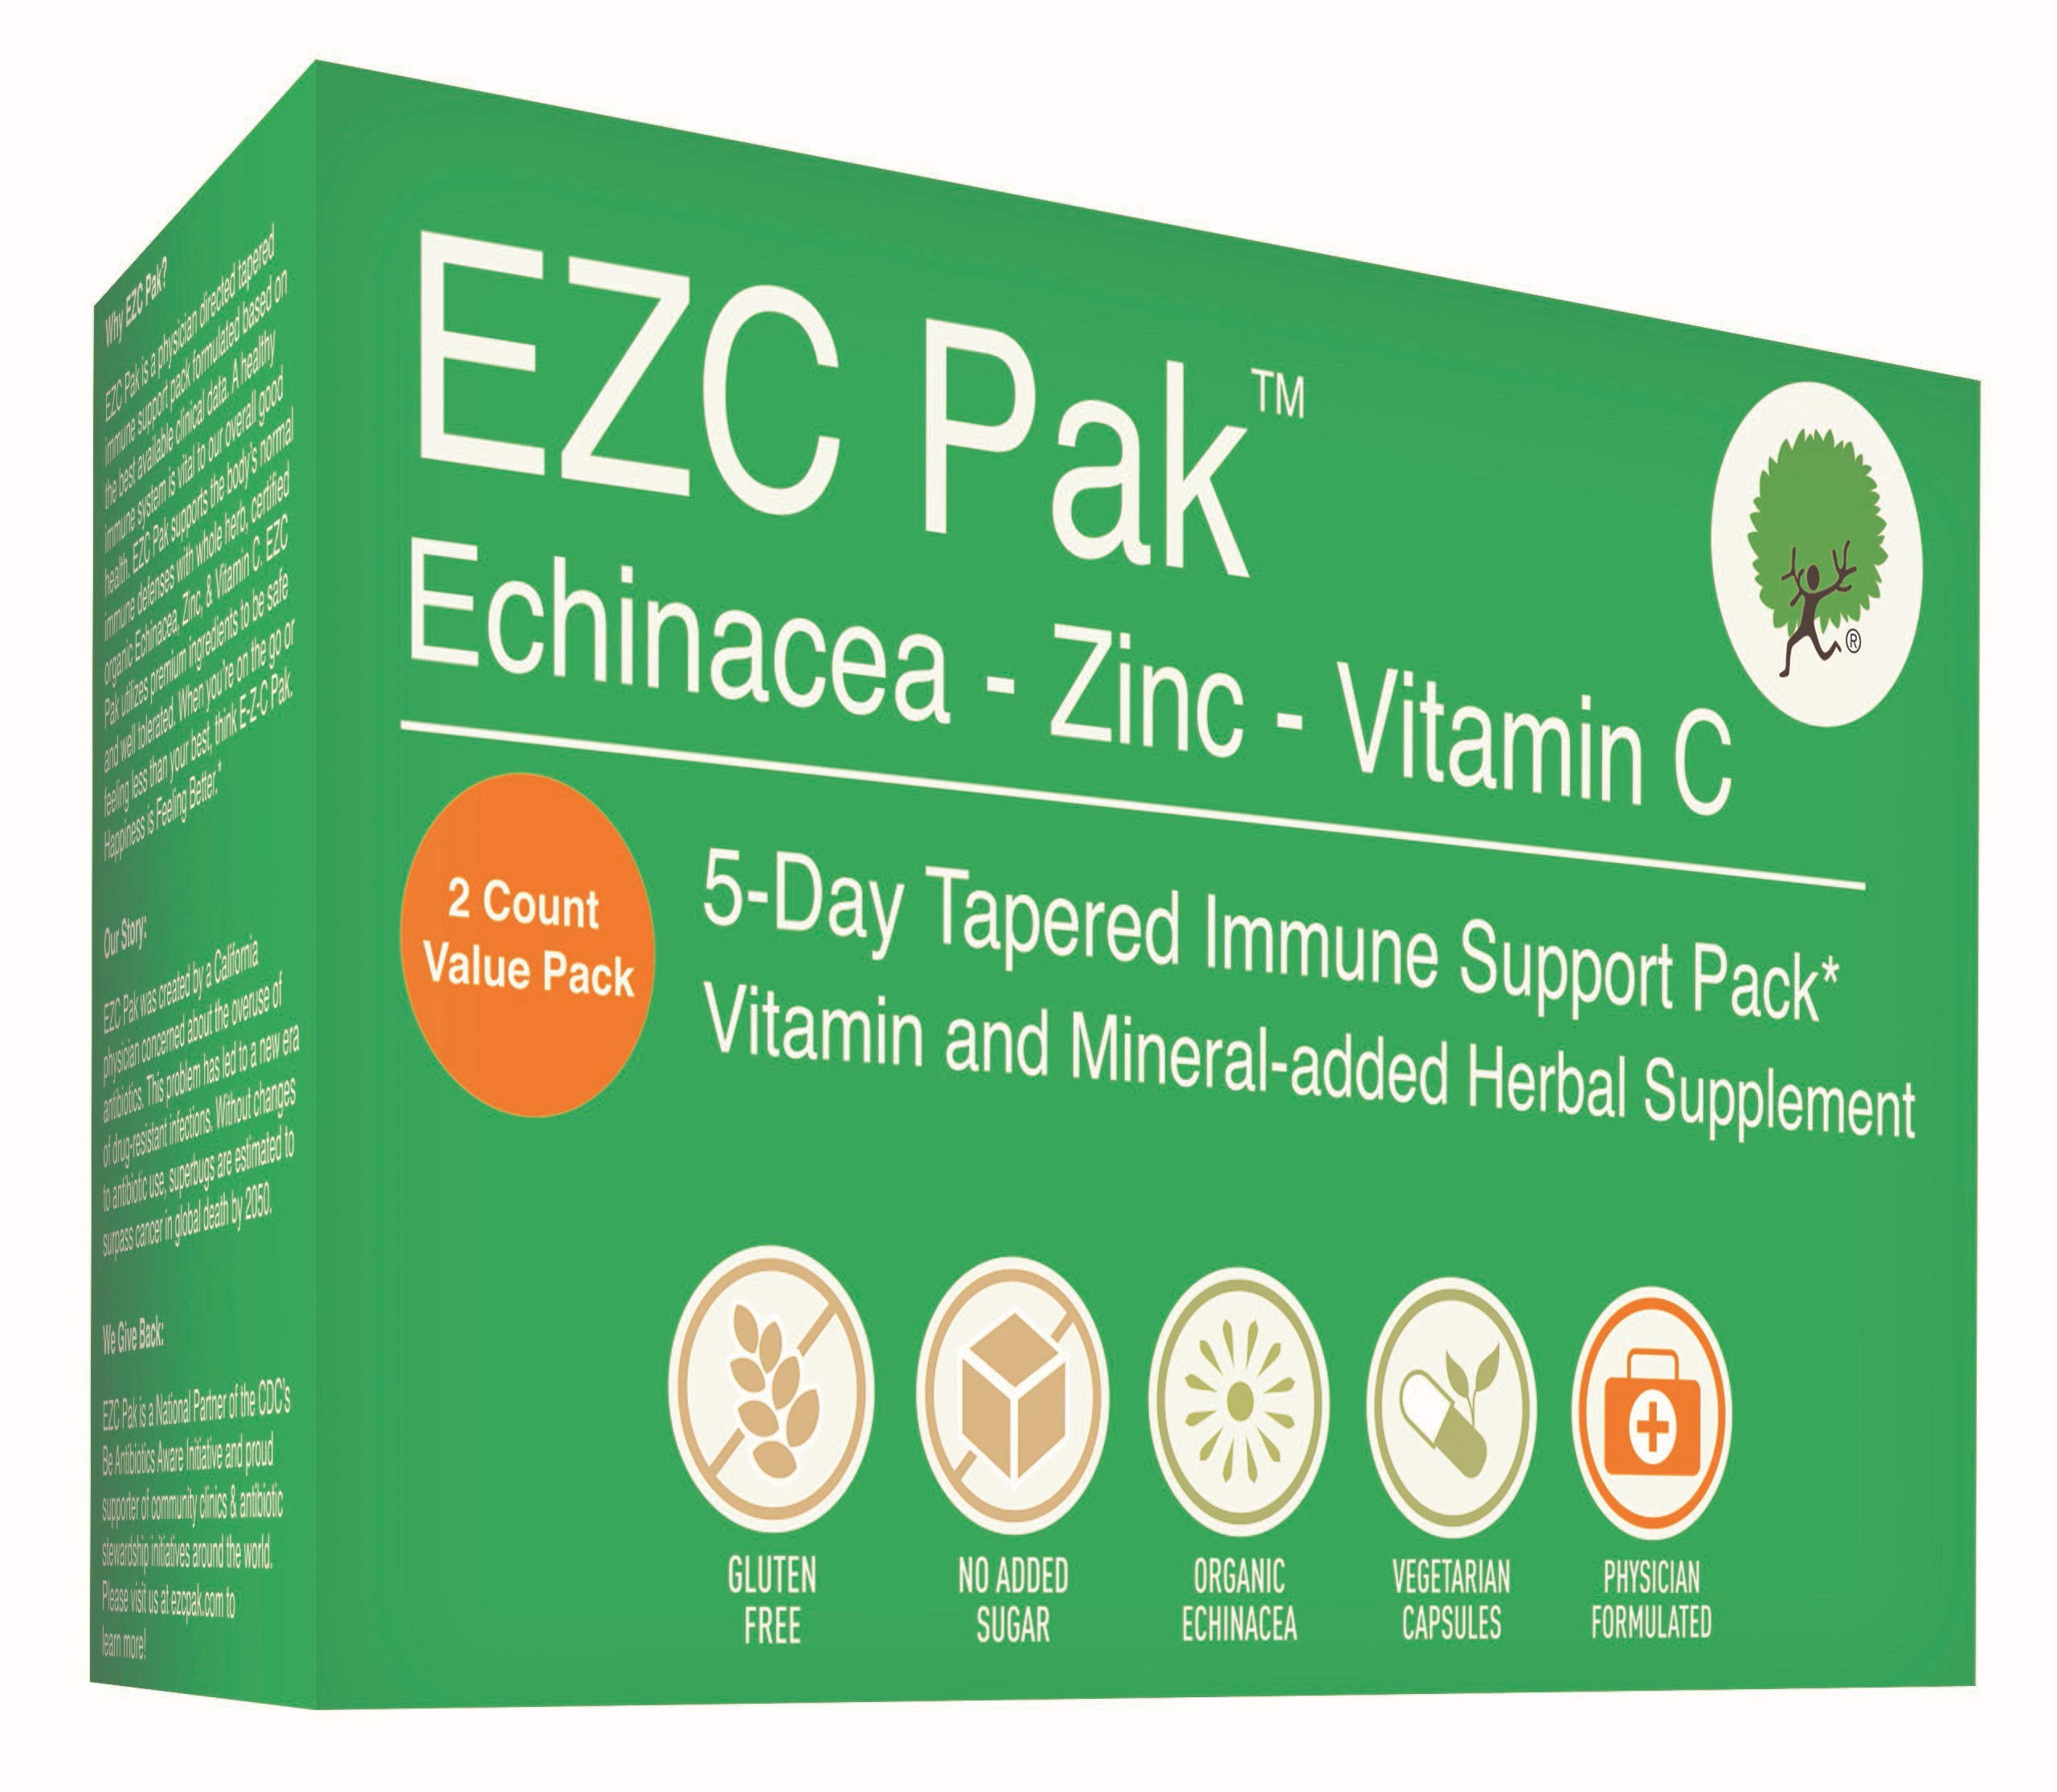 EZC Pak 5-Day Immune System Booster for Cold and Flu Relief (Pack of 2) - Echinacea, Zinc, and Vitamin C, Physician Directed 5-Day Tapered Immune Support Dose Pack by EZC Pak